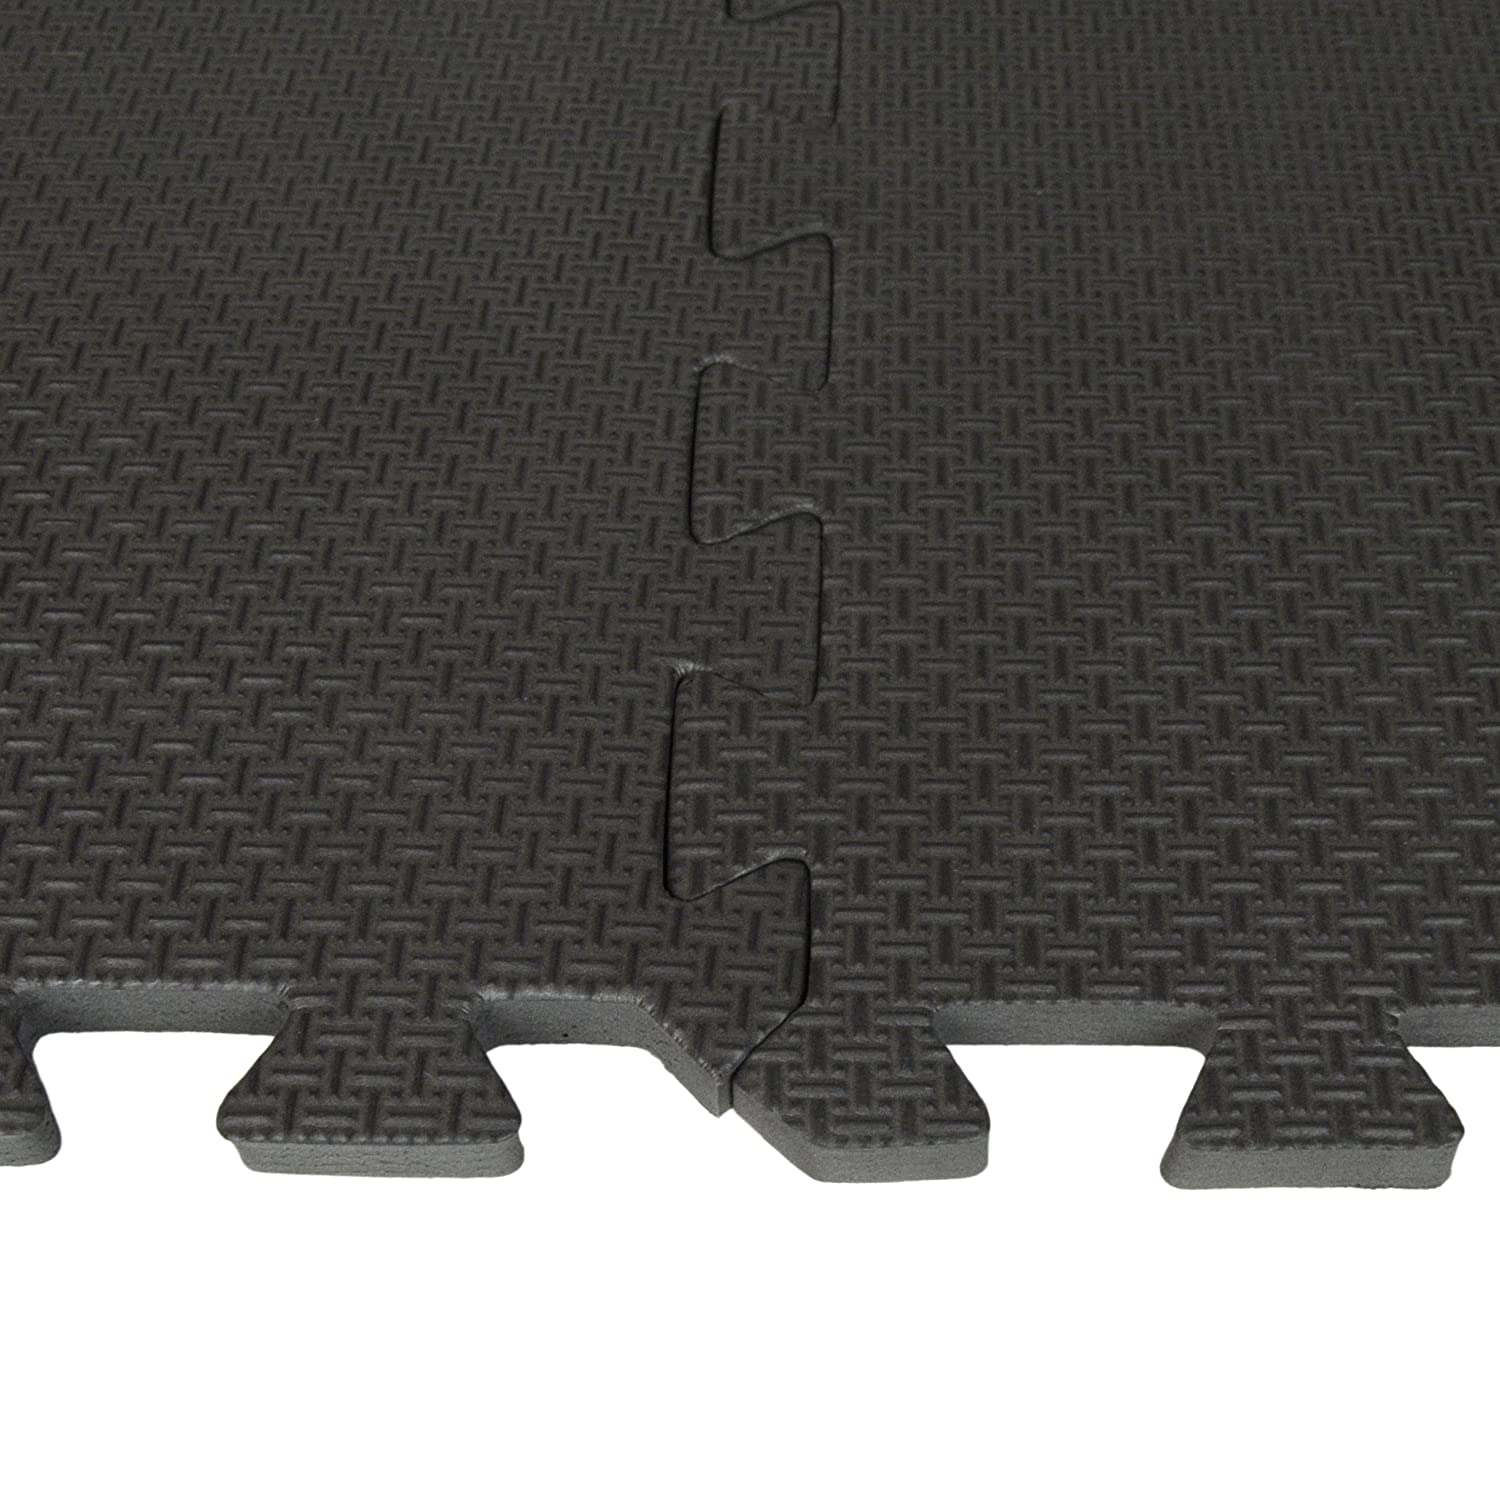 Amazon best step interlocking comfort flooring 8 pack plus amazon best step interlocking comfort flooring 8 pack plus borders 2 x 2 x 38 one pack of 8 tiles 32 sq ft microban protected charcoal dailygadgetfo Images